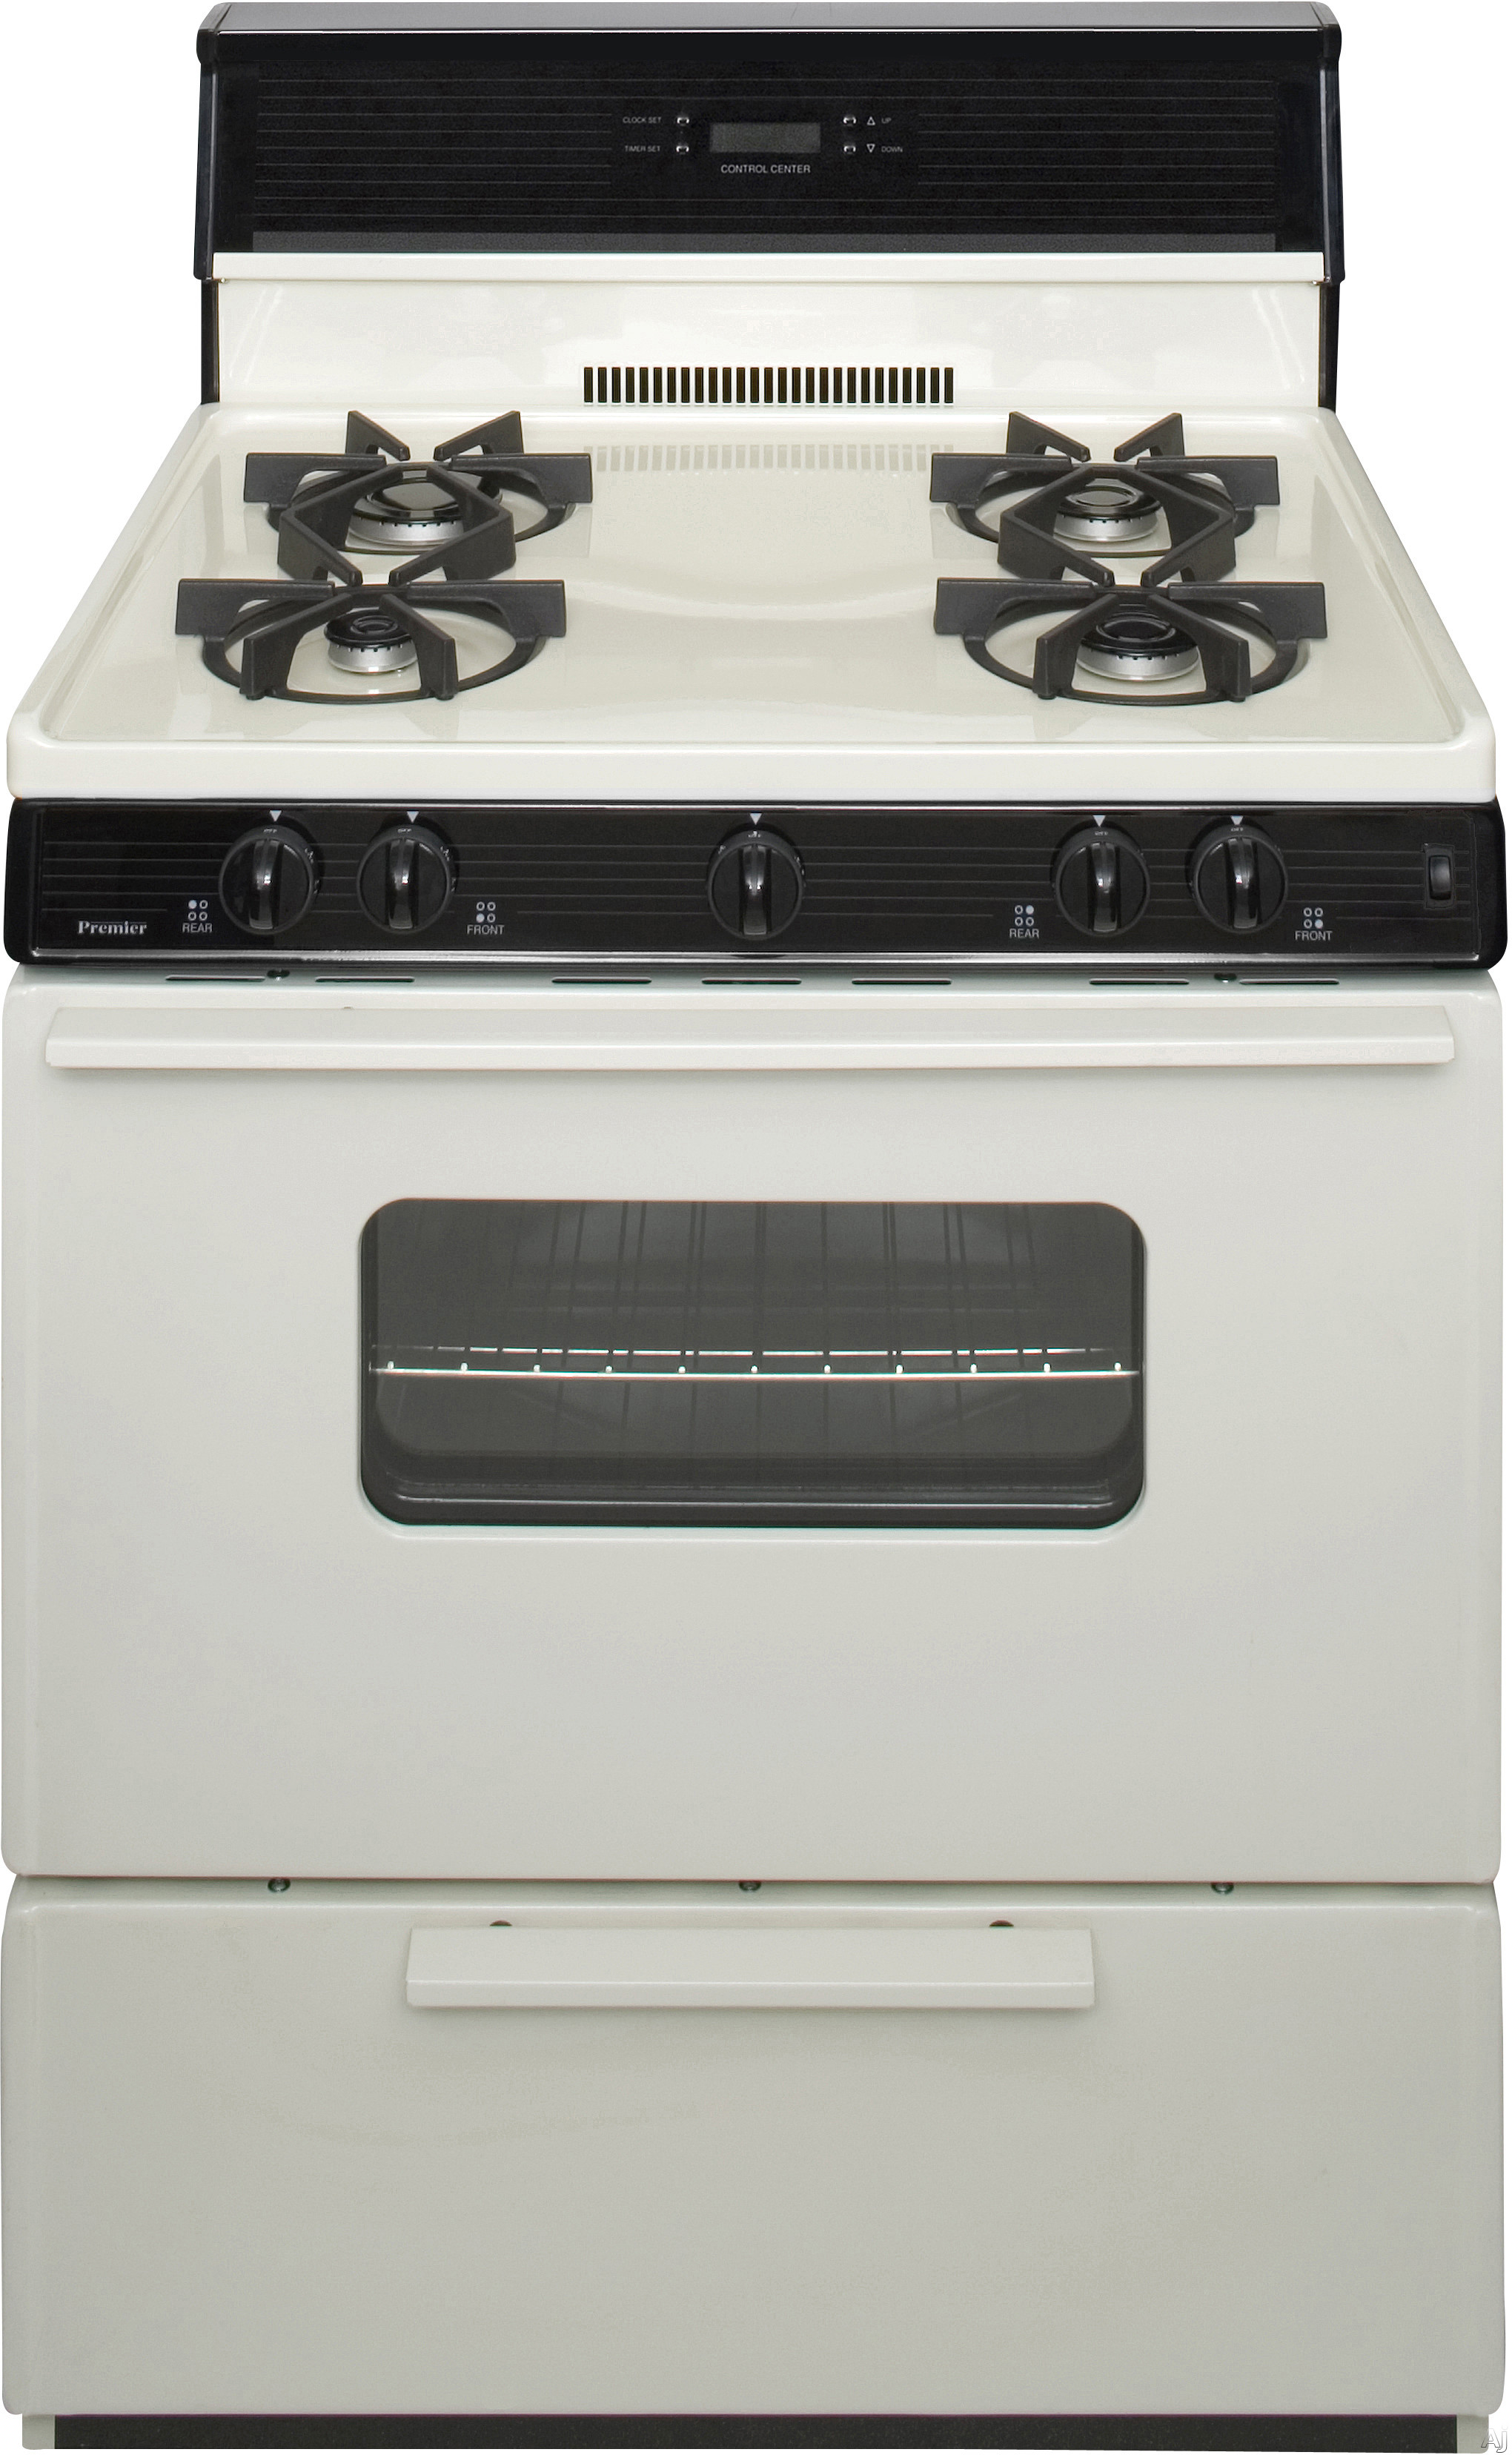 Premier SMK240TP 30 Inch Freestanding Gas Range with 4 Sealed Burners, Electronic Ignition, 17,000 BTU Oven Burner, Electronic Clock/Timer, Interior Oven Light, ADA Compliant and 10 Inch Glass Tempere